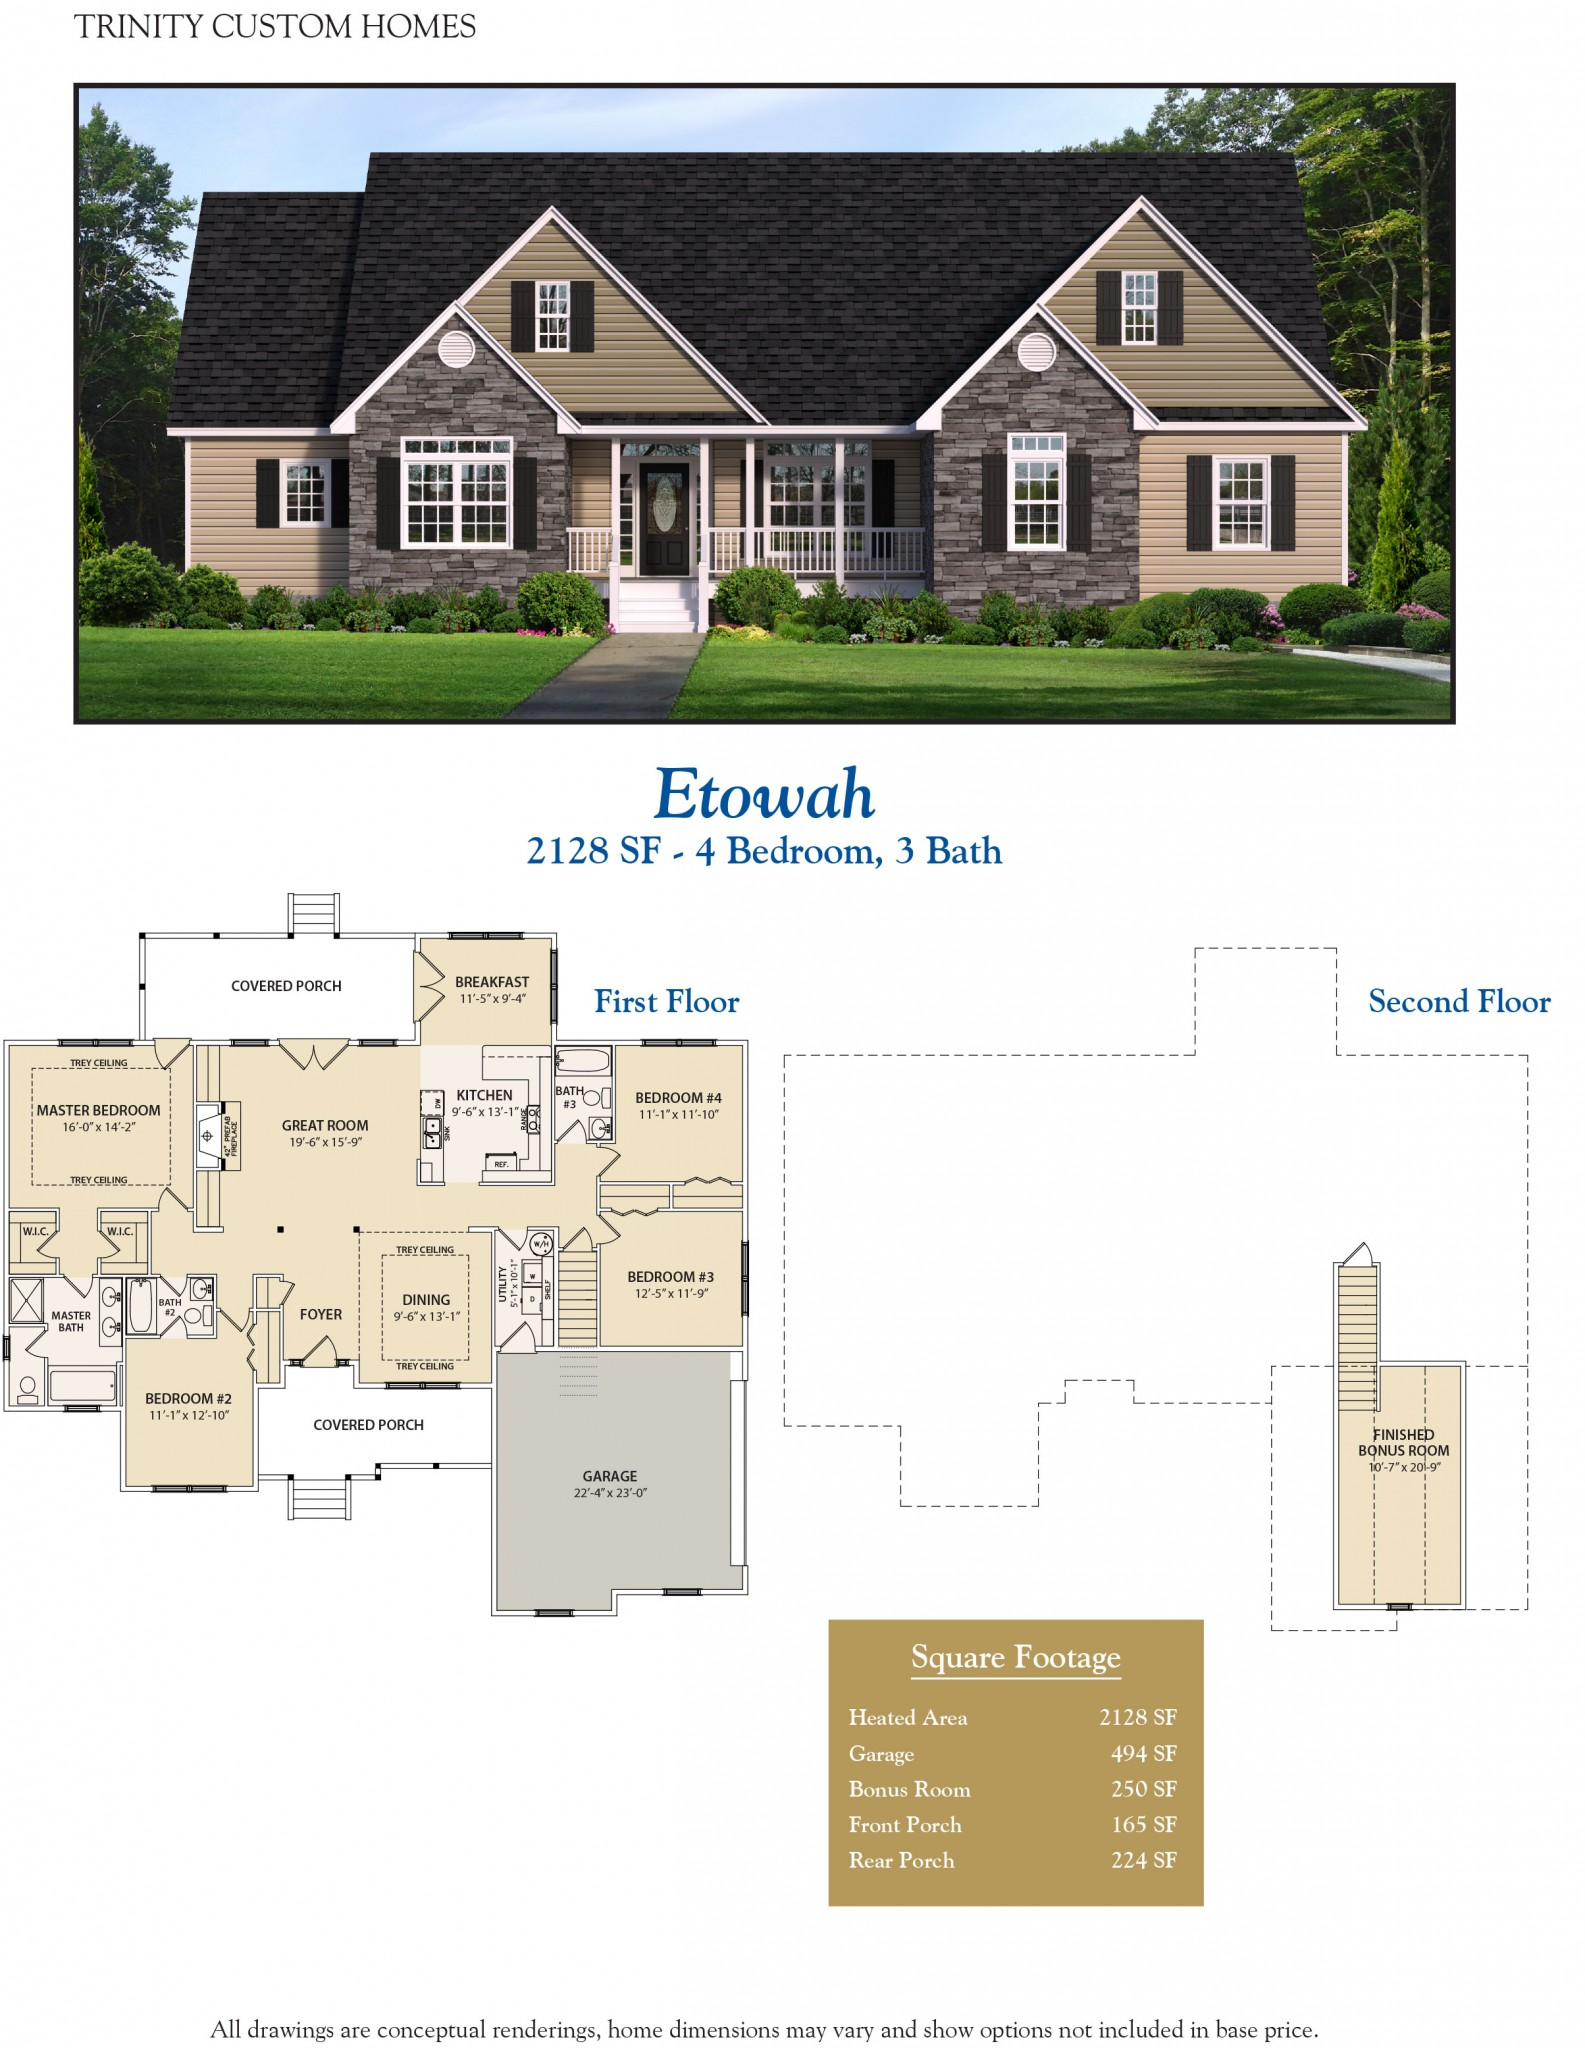 etowah welcome to trinity custom homes